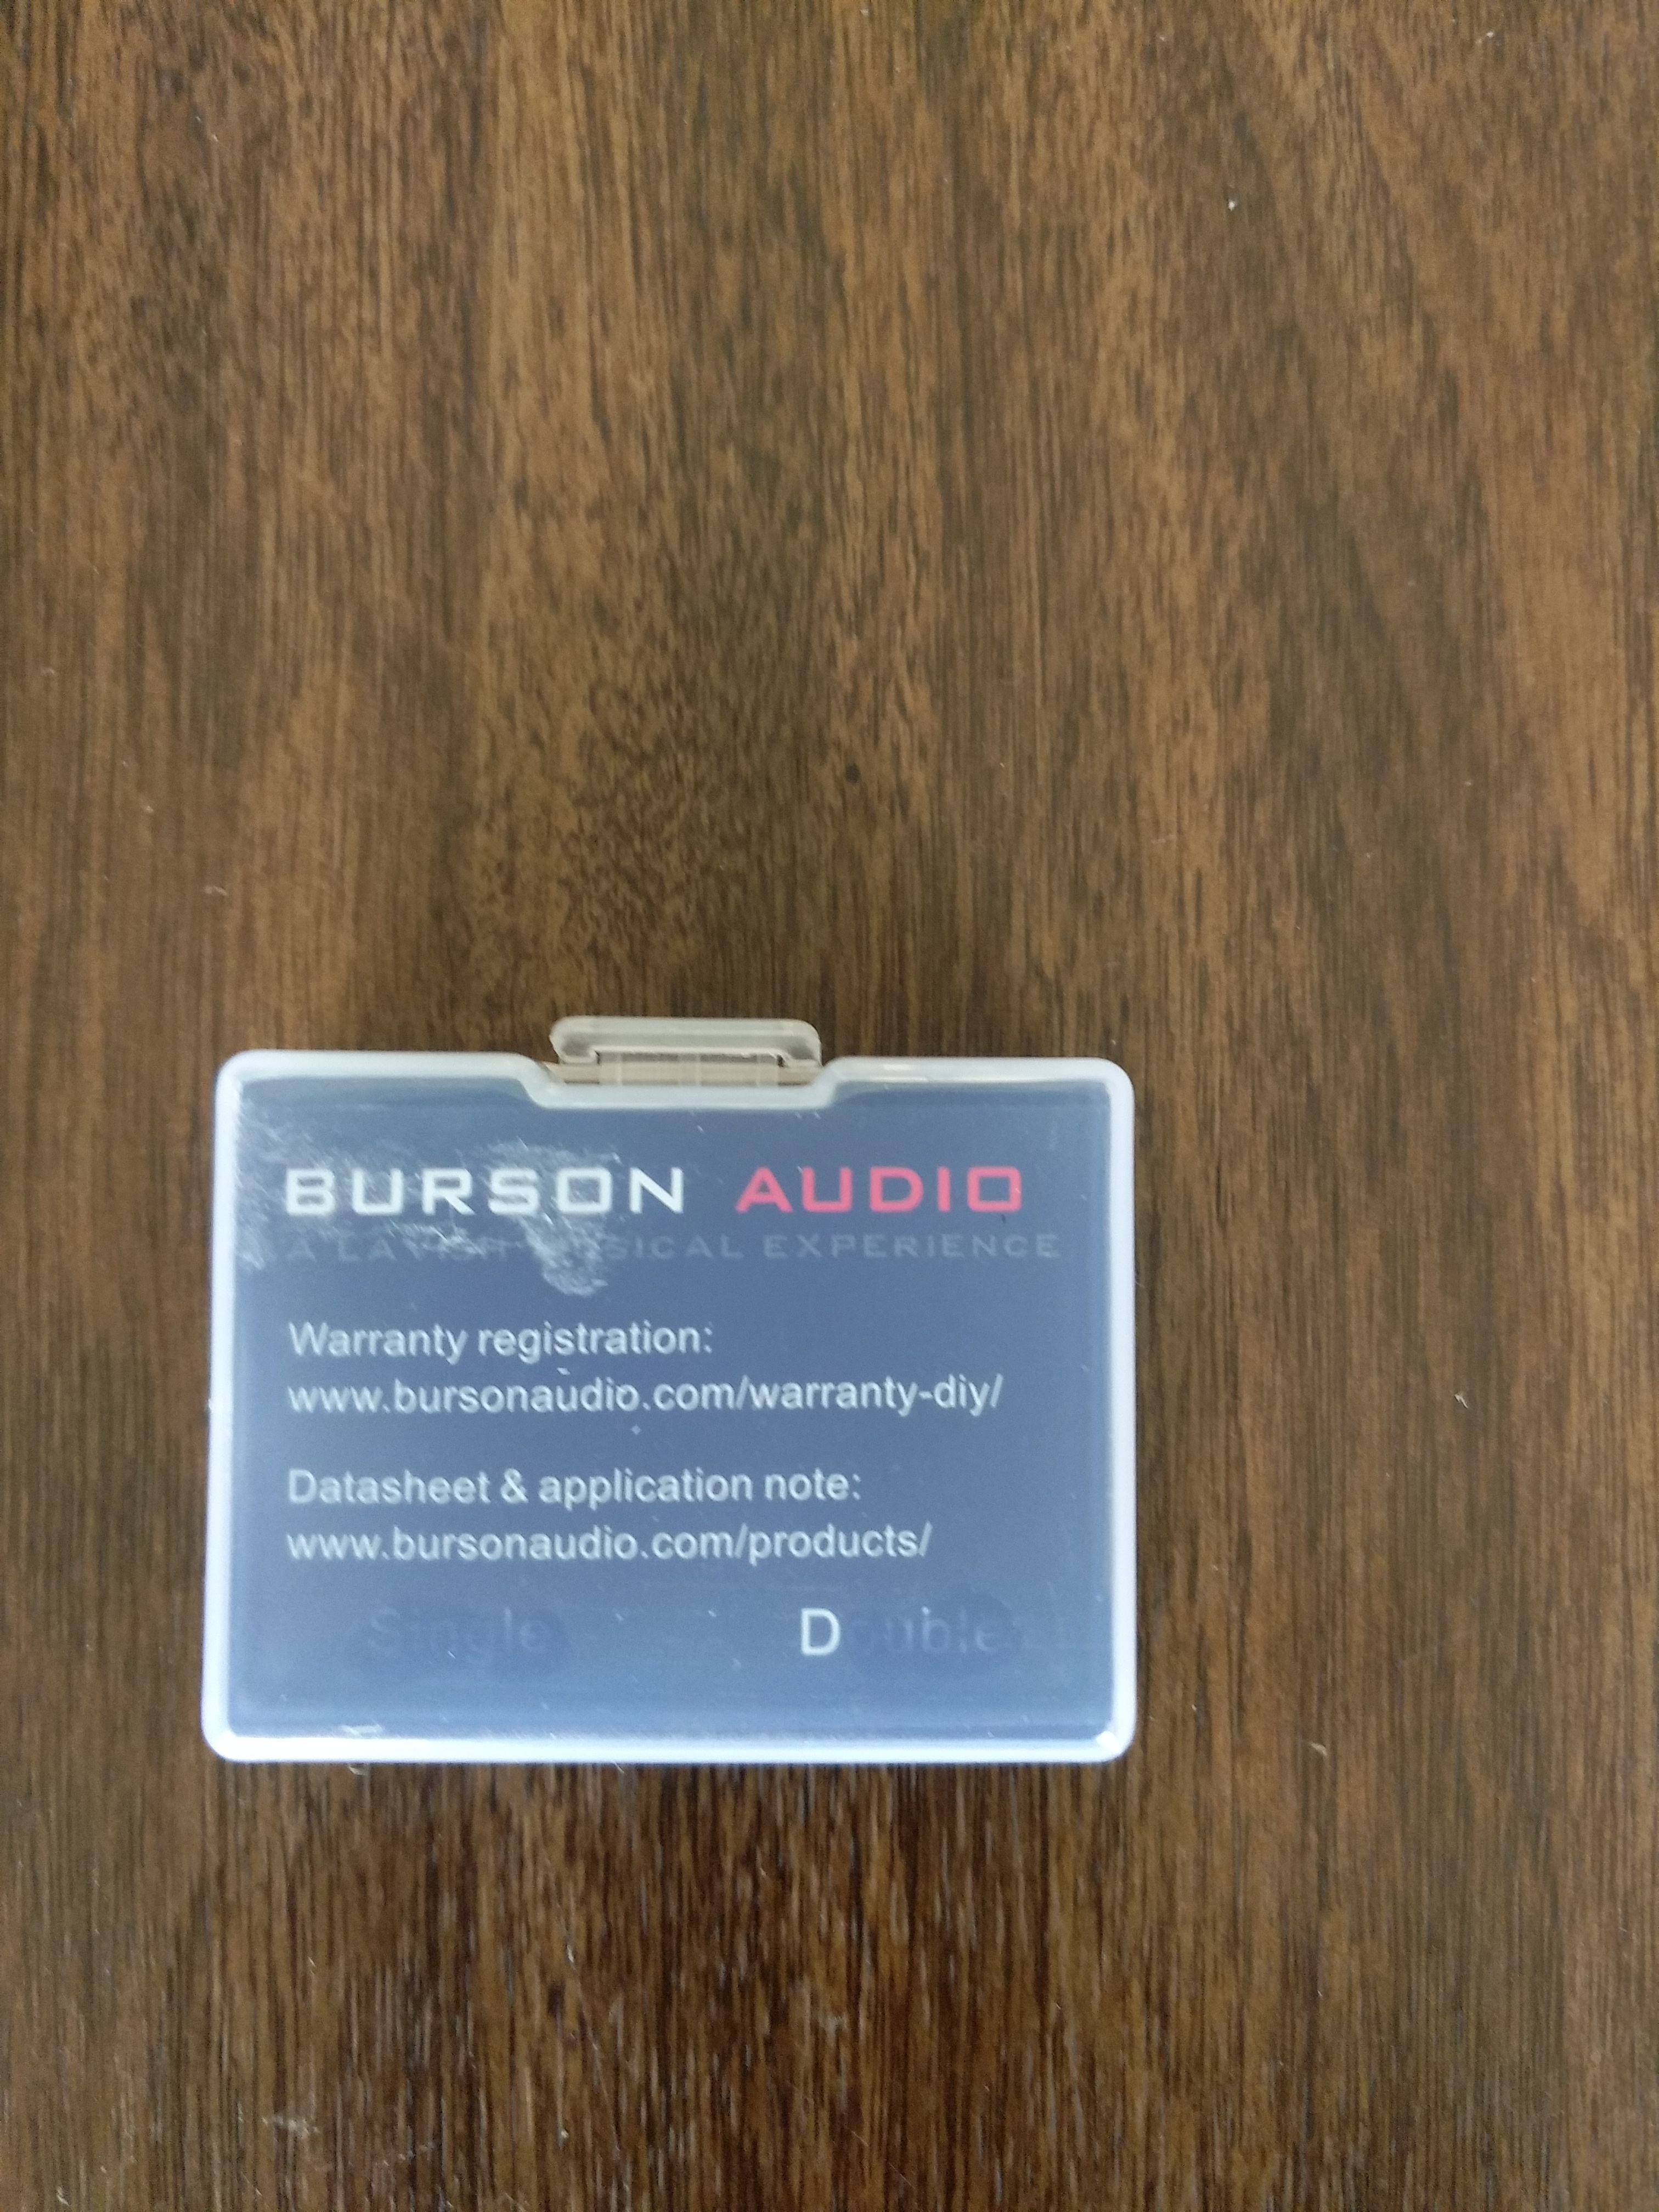 Burson Audio Supreme Sound Opamp V5i Reviews Headphone Op Amp How To Disable A Single In Dual Packaging Is Famous For Its Discrete V4 And V5 Amps But Many Applications Cannot Accommodate Them Due Their Larger Size